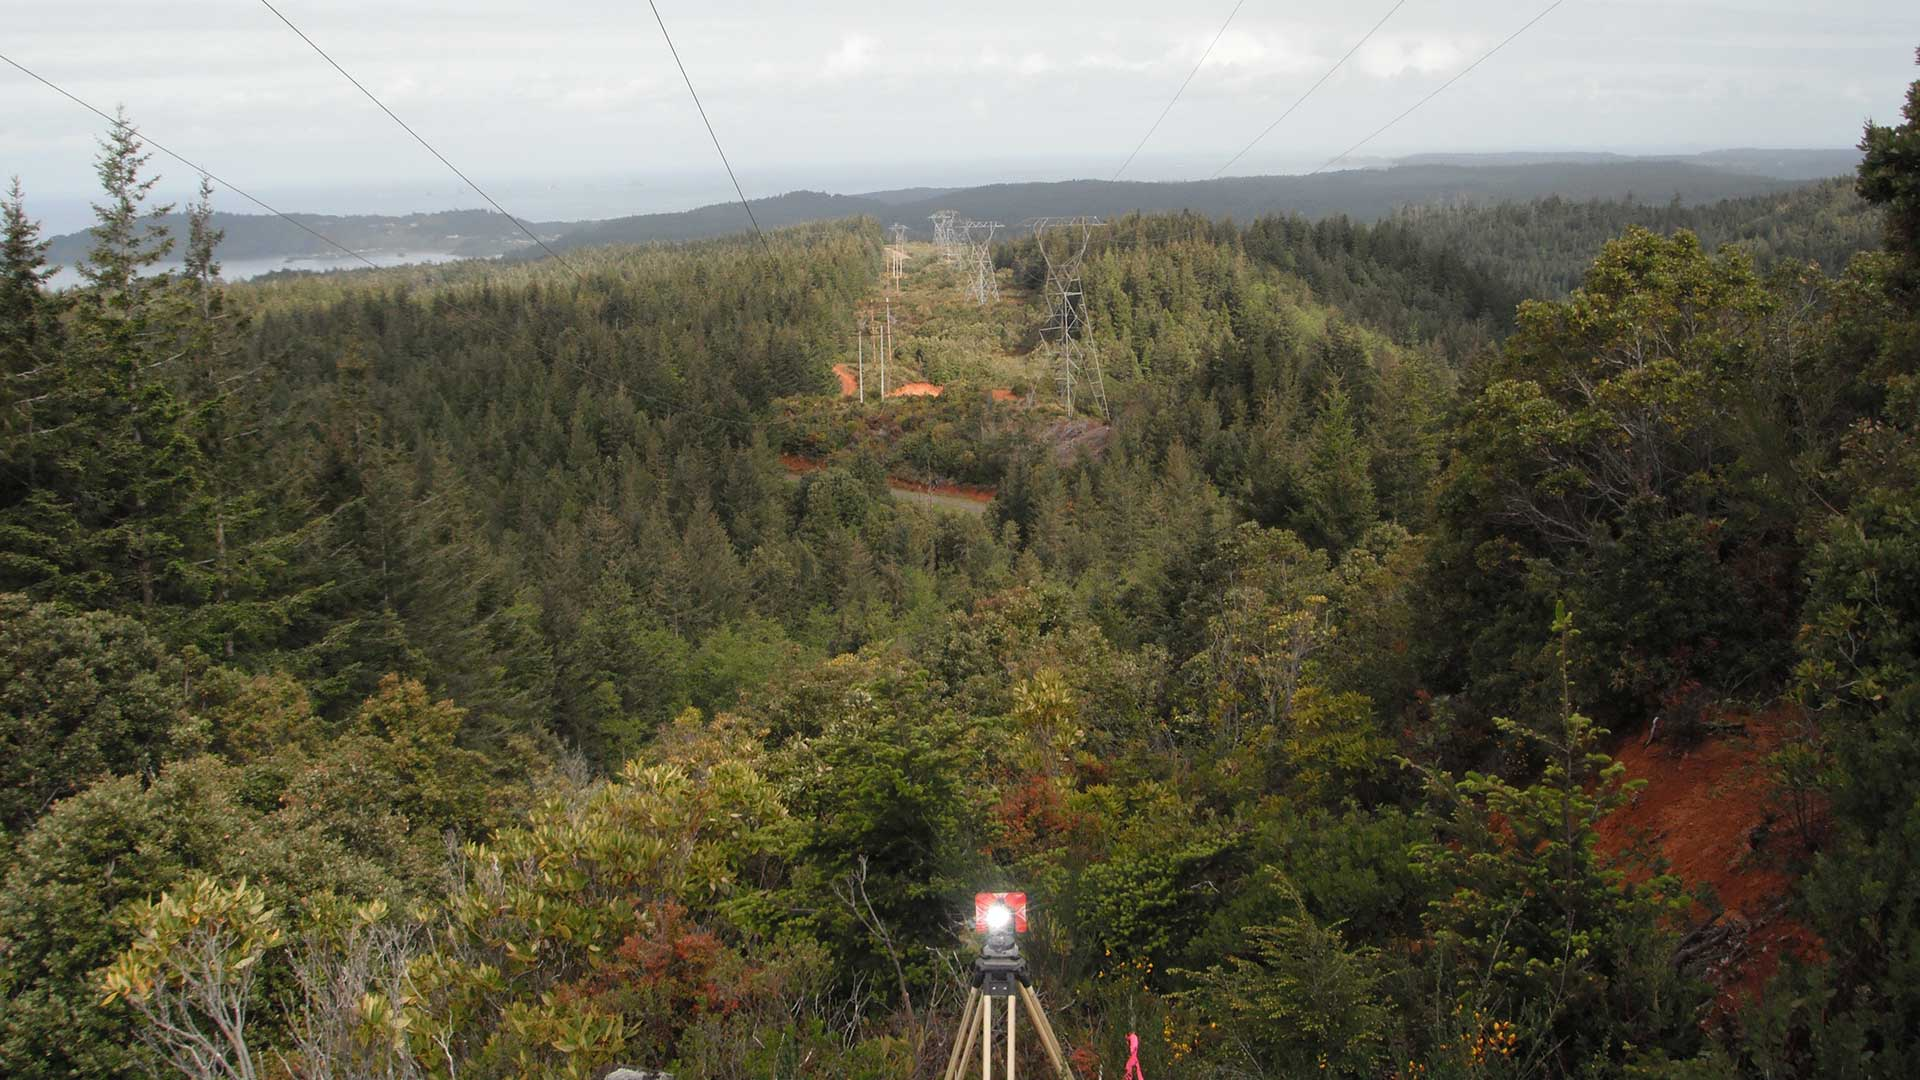 Bandon-Rogue No. 1 Transmission Line - survey